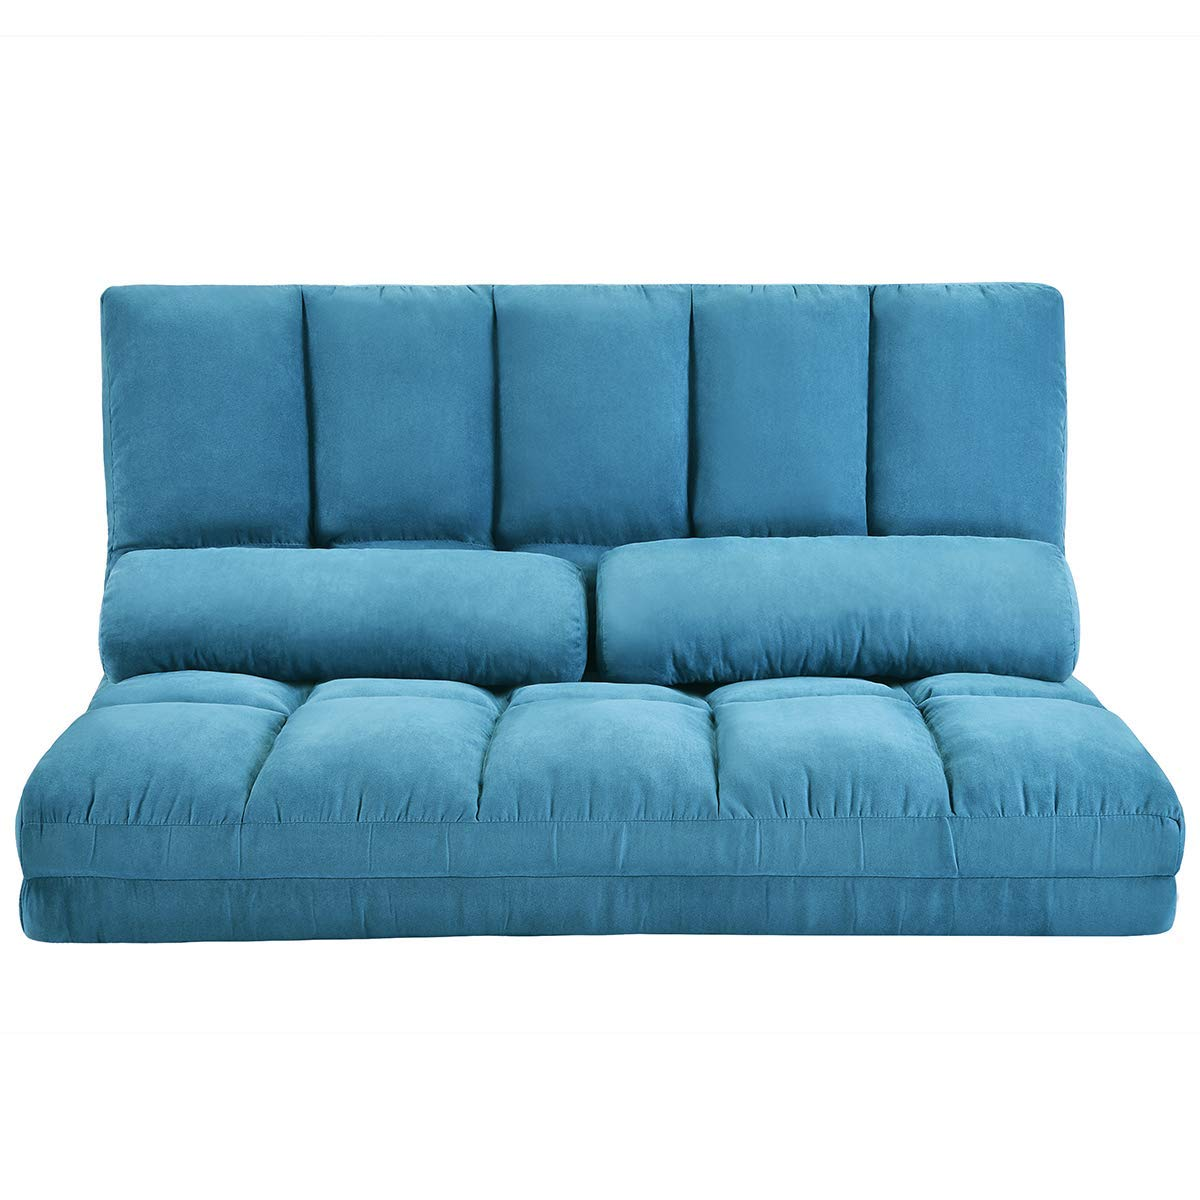 MOOSENG Adjustable Floor Couch and Sofa for Living Room and Bedroom, Foldable 5 Reclining Position with 2 Pillows, Love seat, Old/Blue by MOOSENG